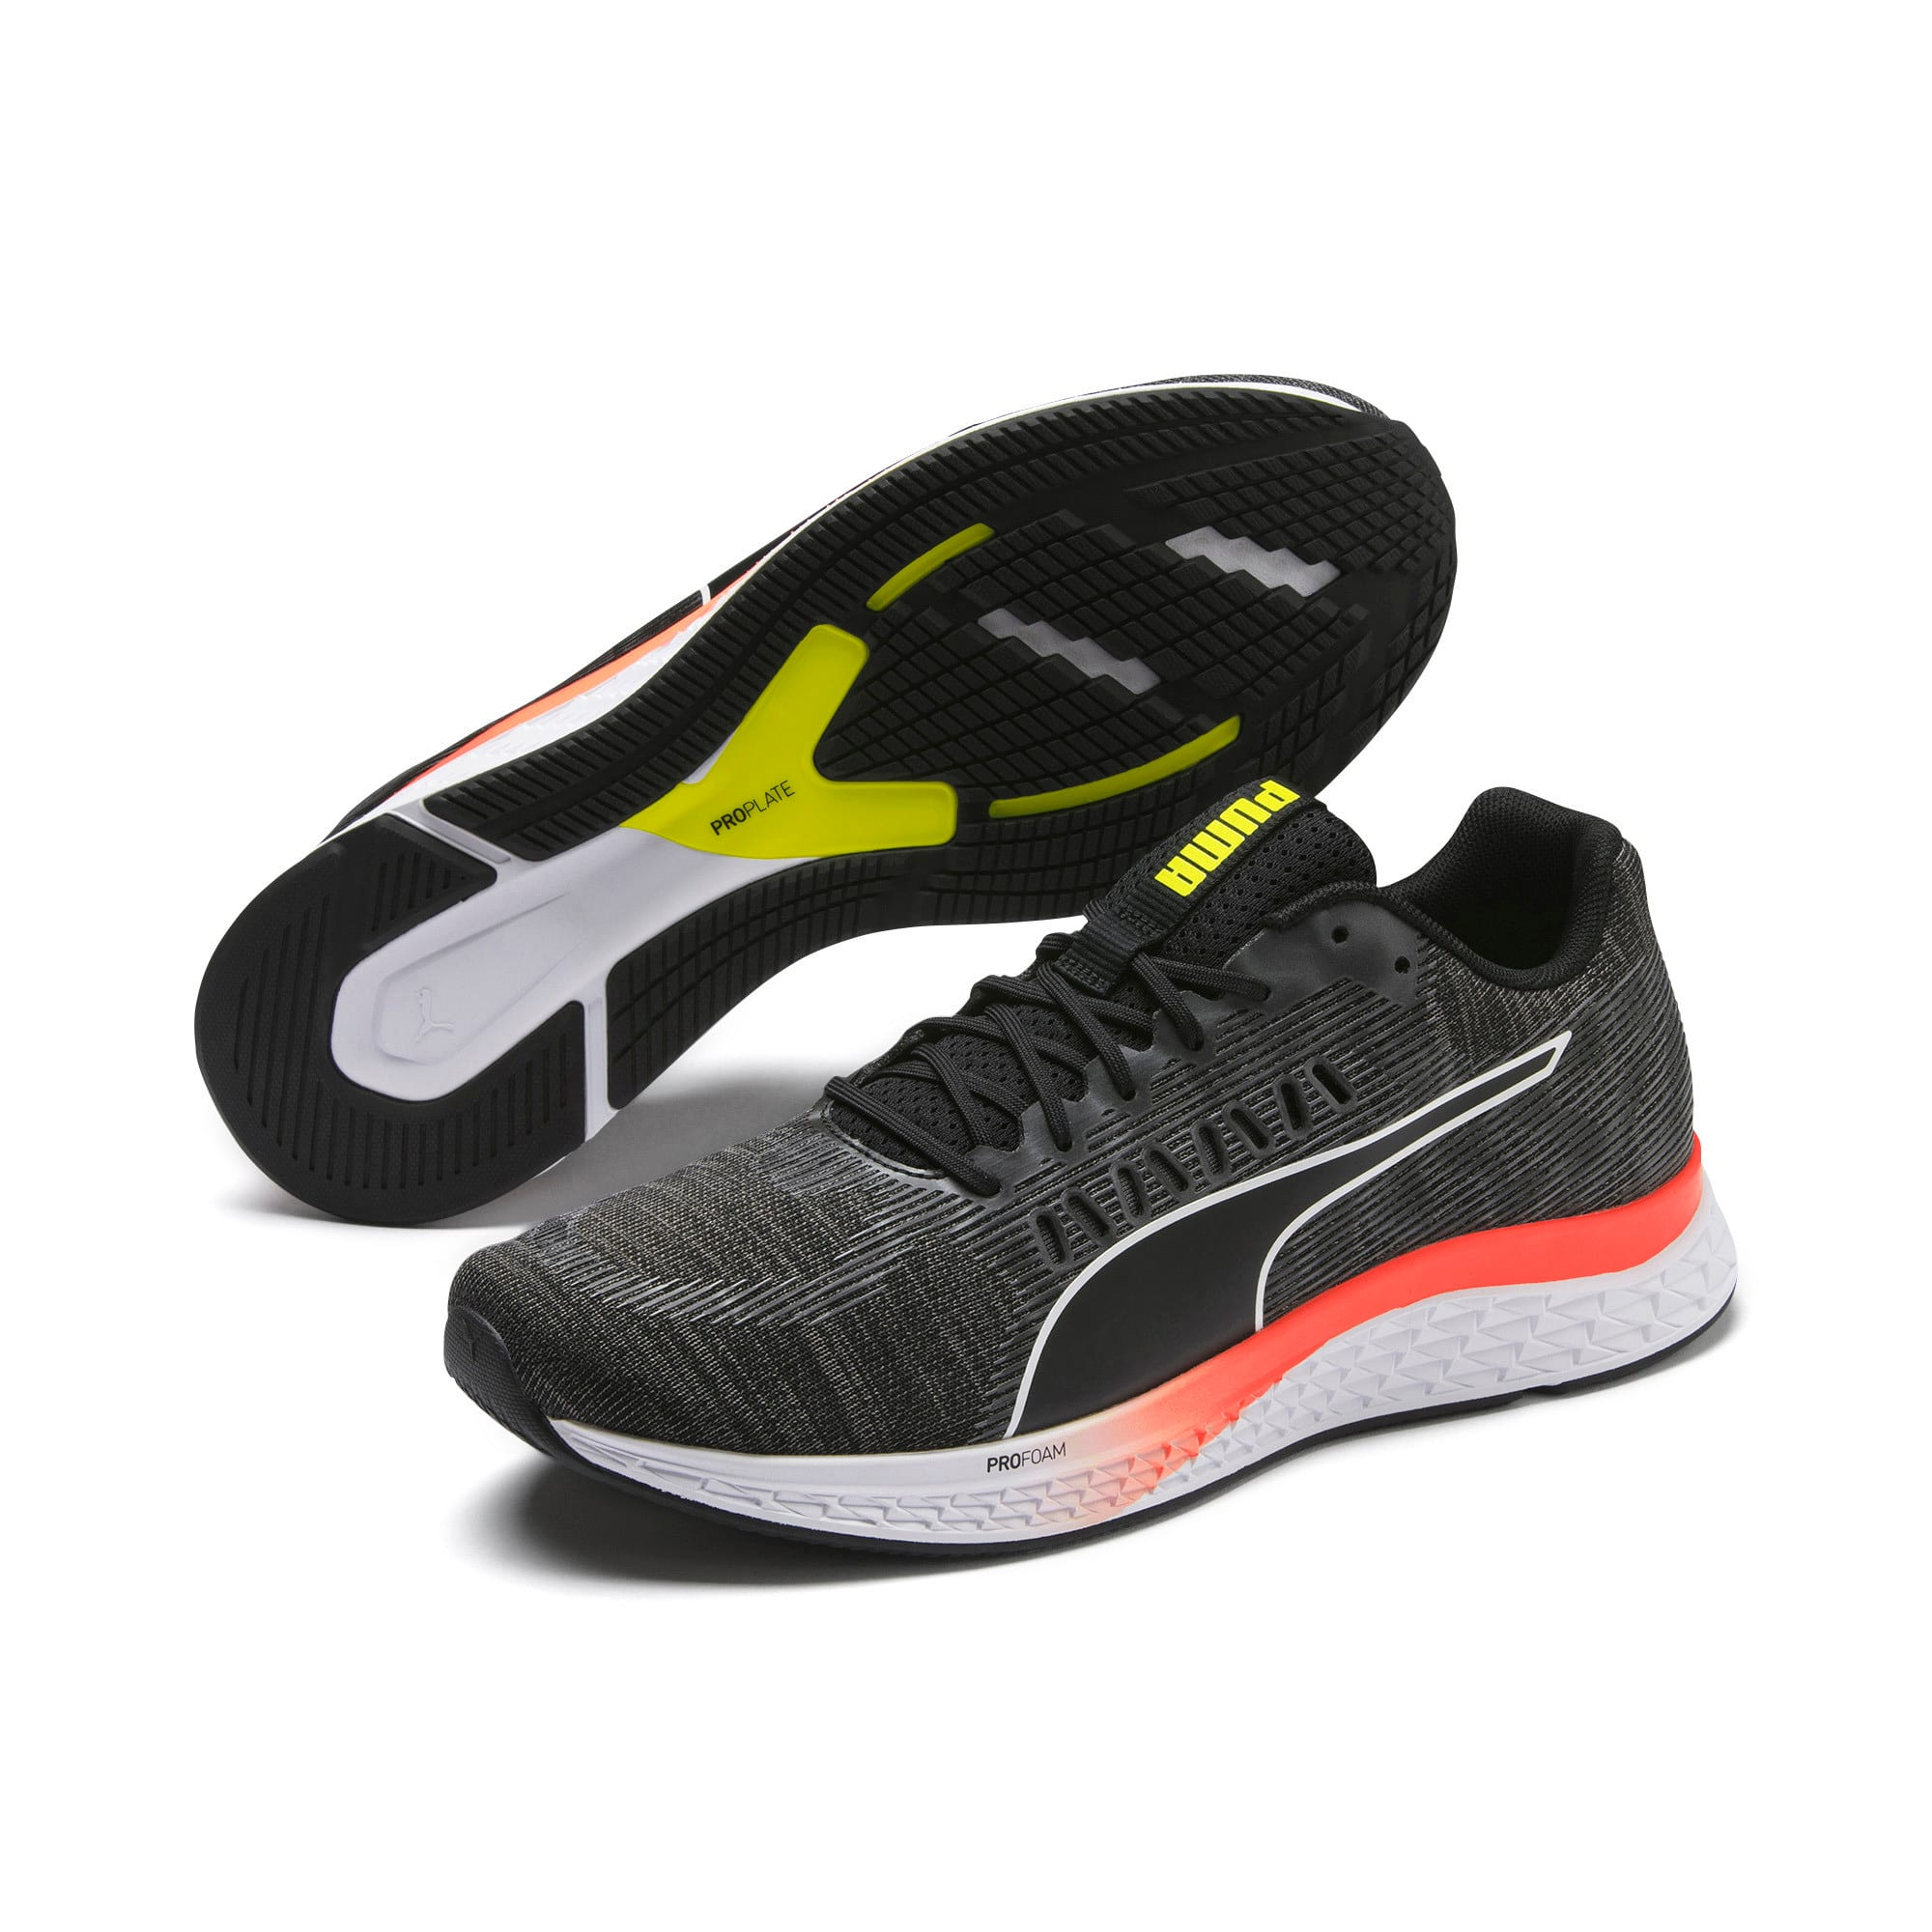 Thumbnail 3 of SPEED SUTAMINA Running Shoes, Black-CASTLEROCK-Yellow-Red, medium